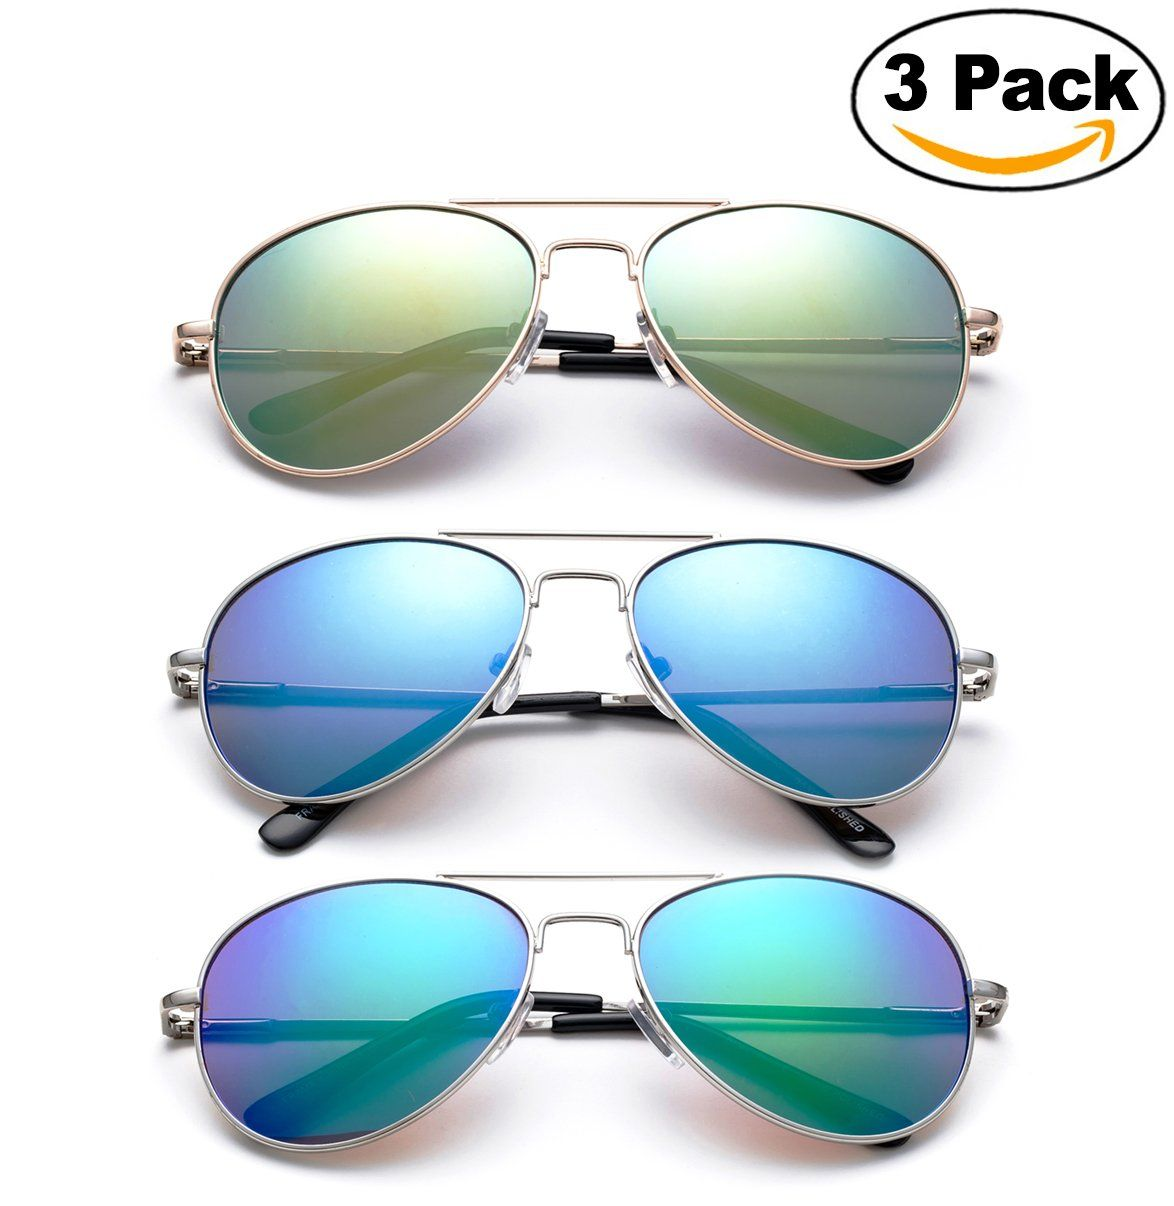 4caaecbb4c7be Newbee Fashion - Kyra Kids Aviator Flash Mirrored Lead Free Fashion  Sunglasses with Spring Hinges